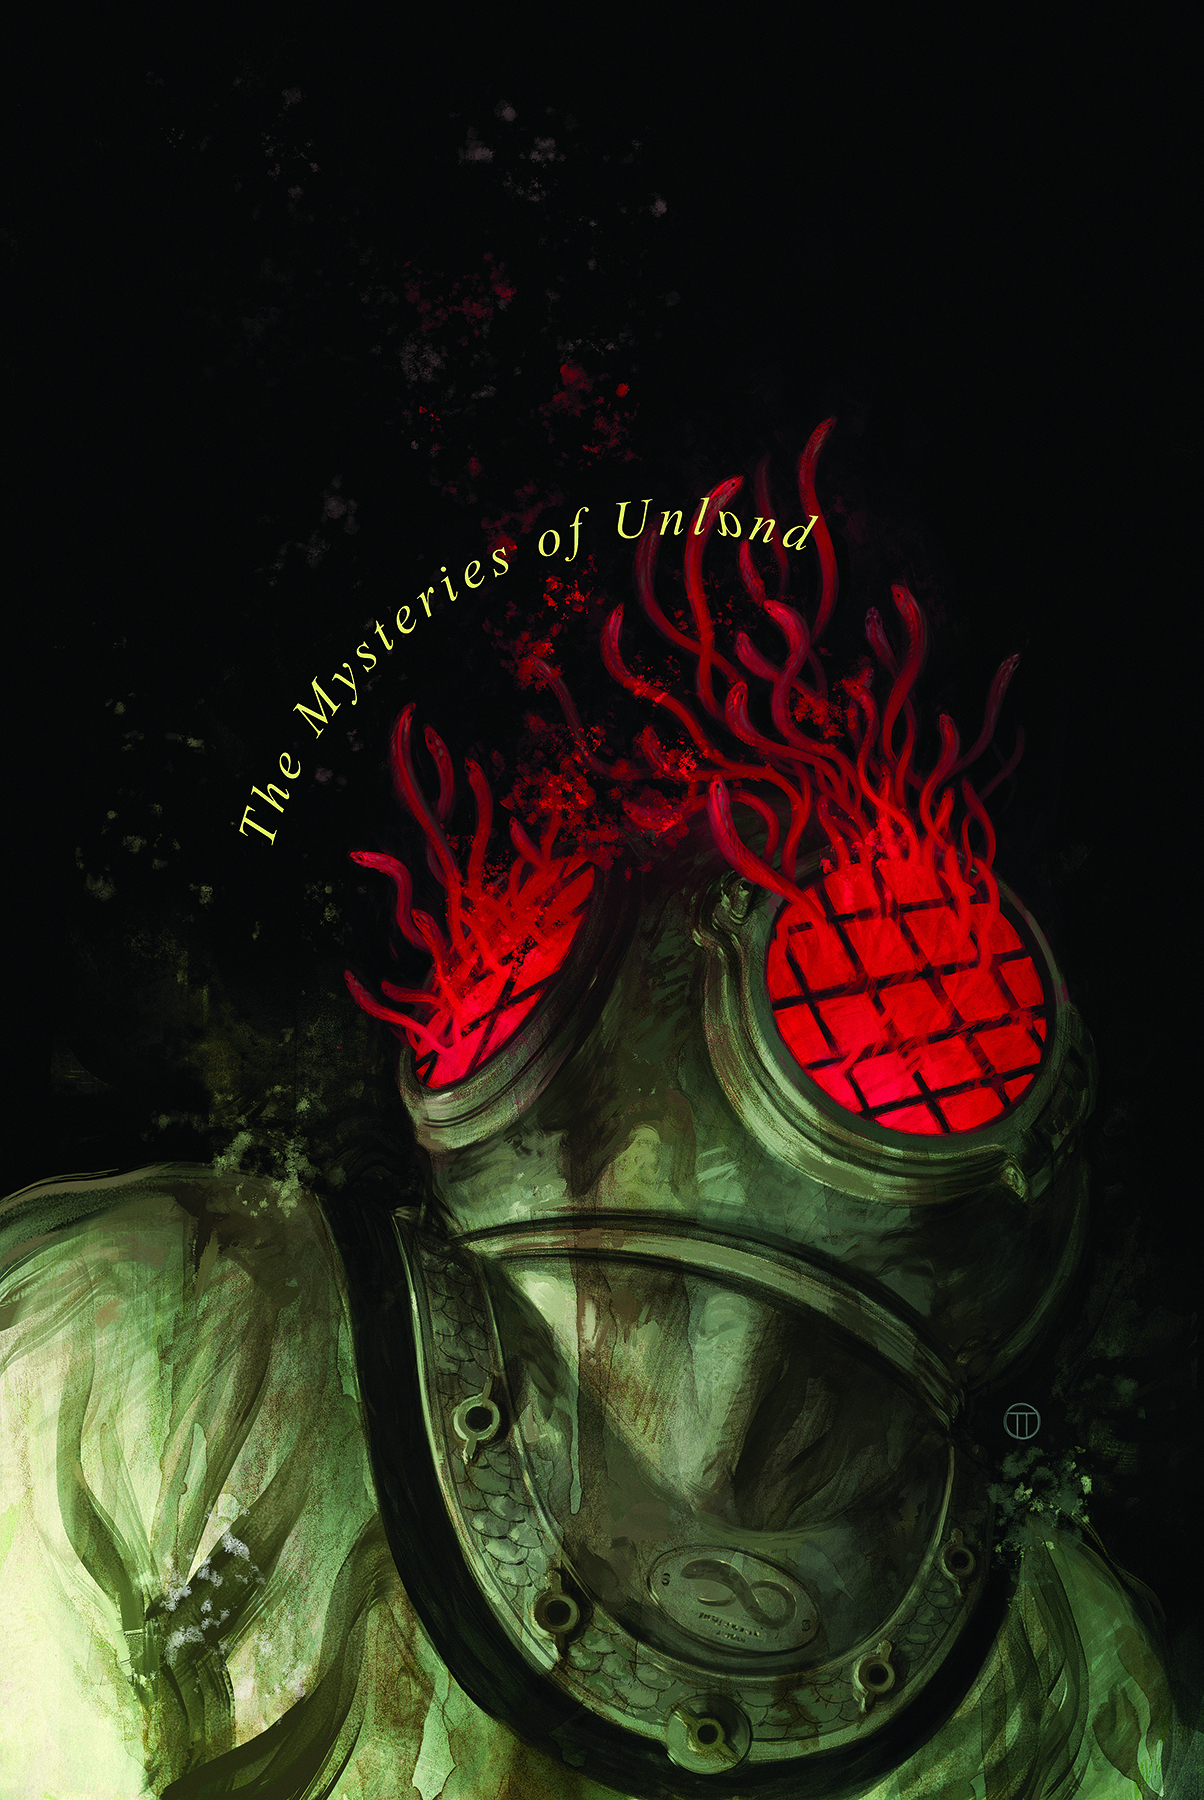 WITCHFINDER MYSTERIES OF UNLAND #2